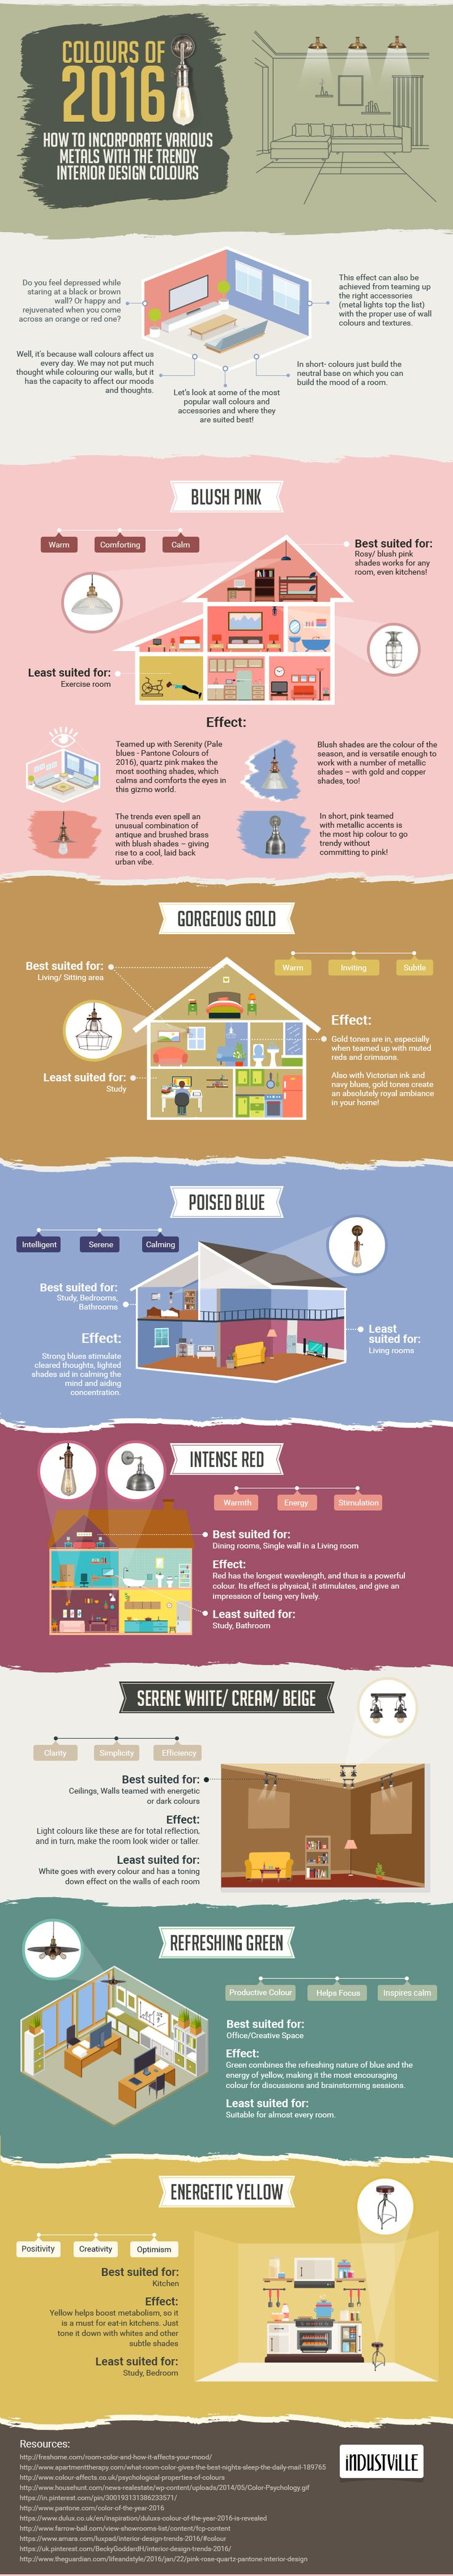 Ever wonder what colors can make a difference in what rooms? This infographic came to us with not only color palettes but what it would look like to combine metals and interior design colors. Metals are a great way to accent a room. By incorporating color with specific metals, your room can really pop with …